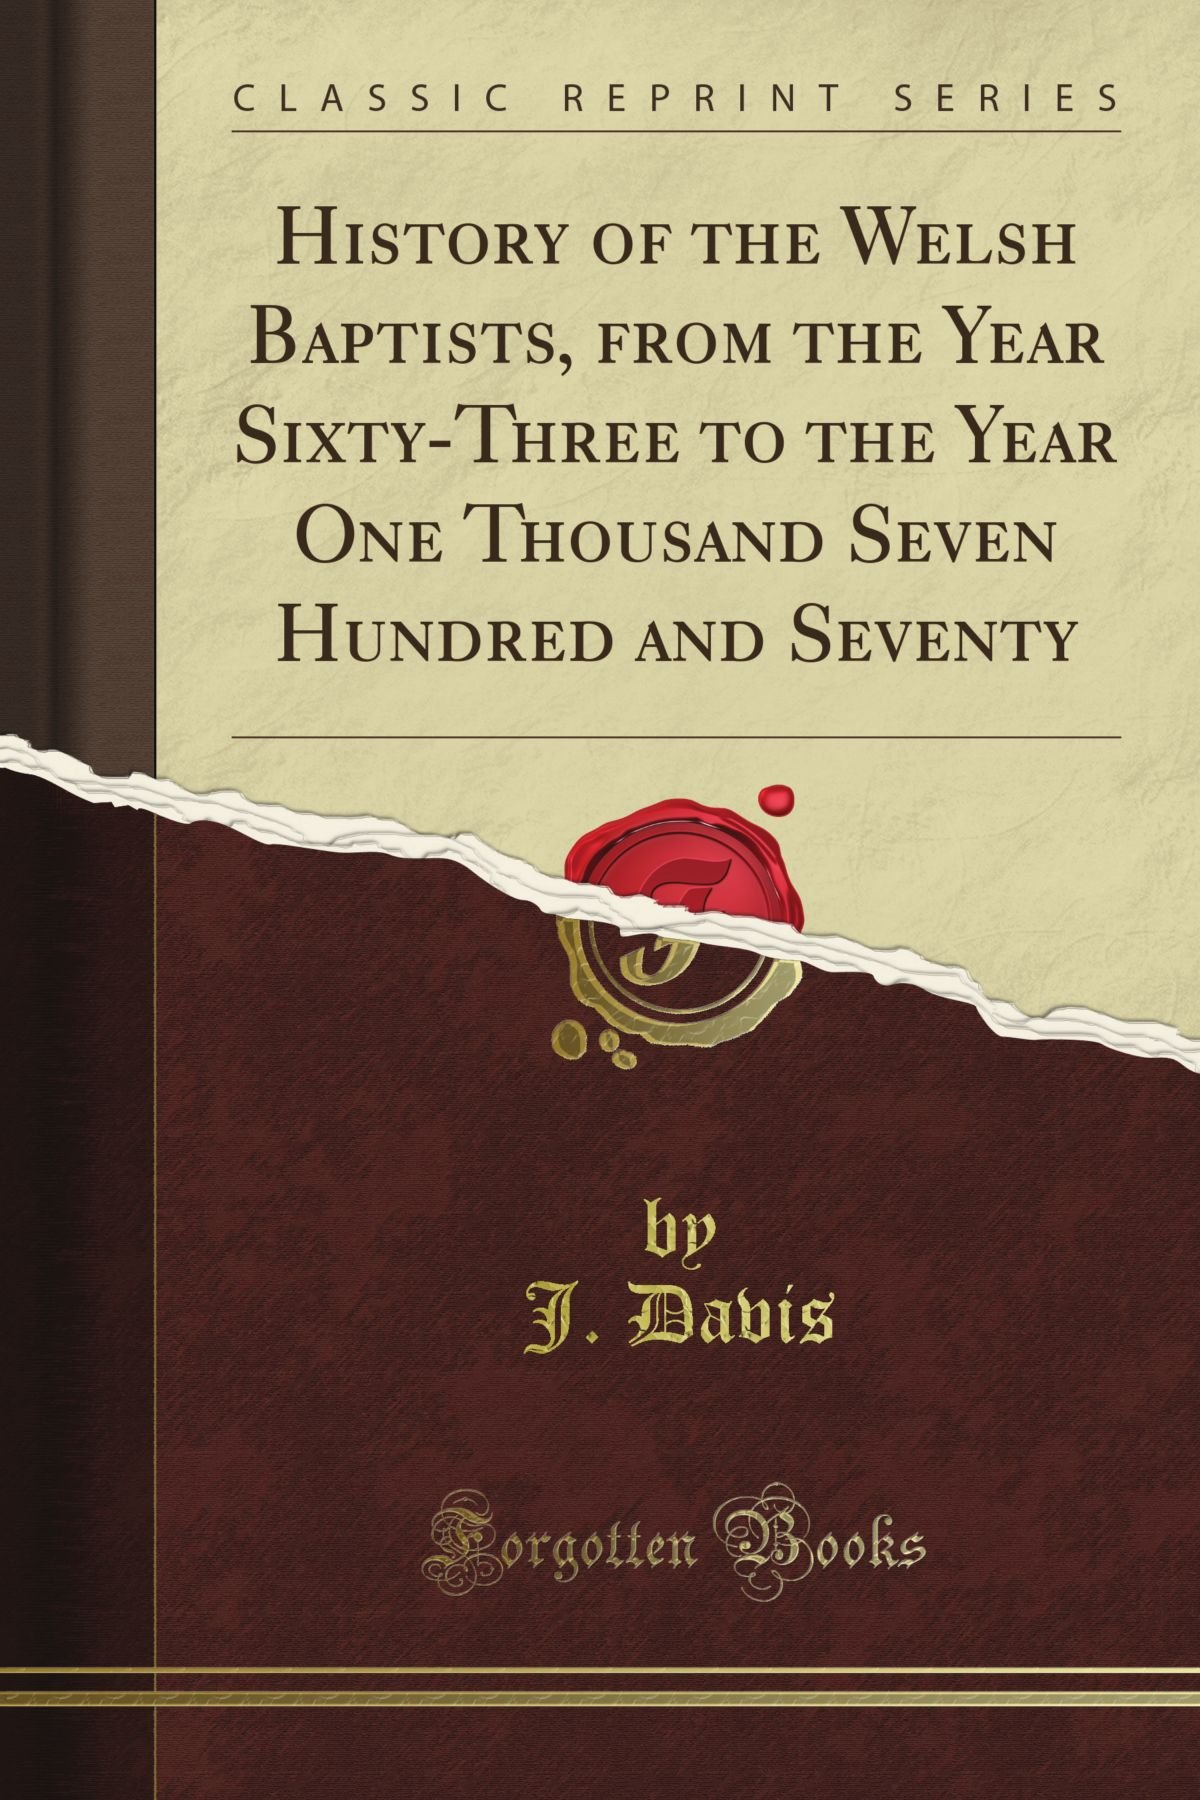 Download History of the Welsh Baptists, from the Year Sixty-Three to the Year One Thousand Seven Hundred and Seventy (Classic Reprint) Text fb2 ebook